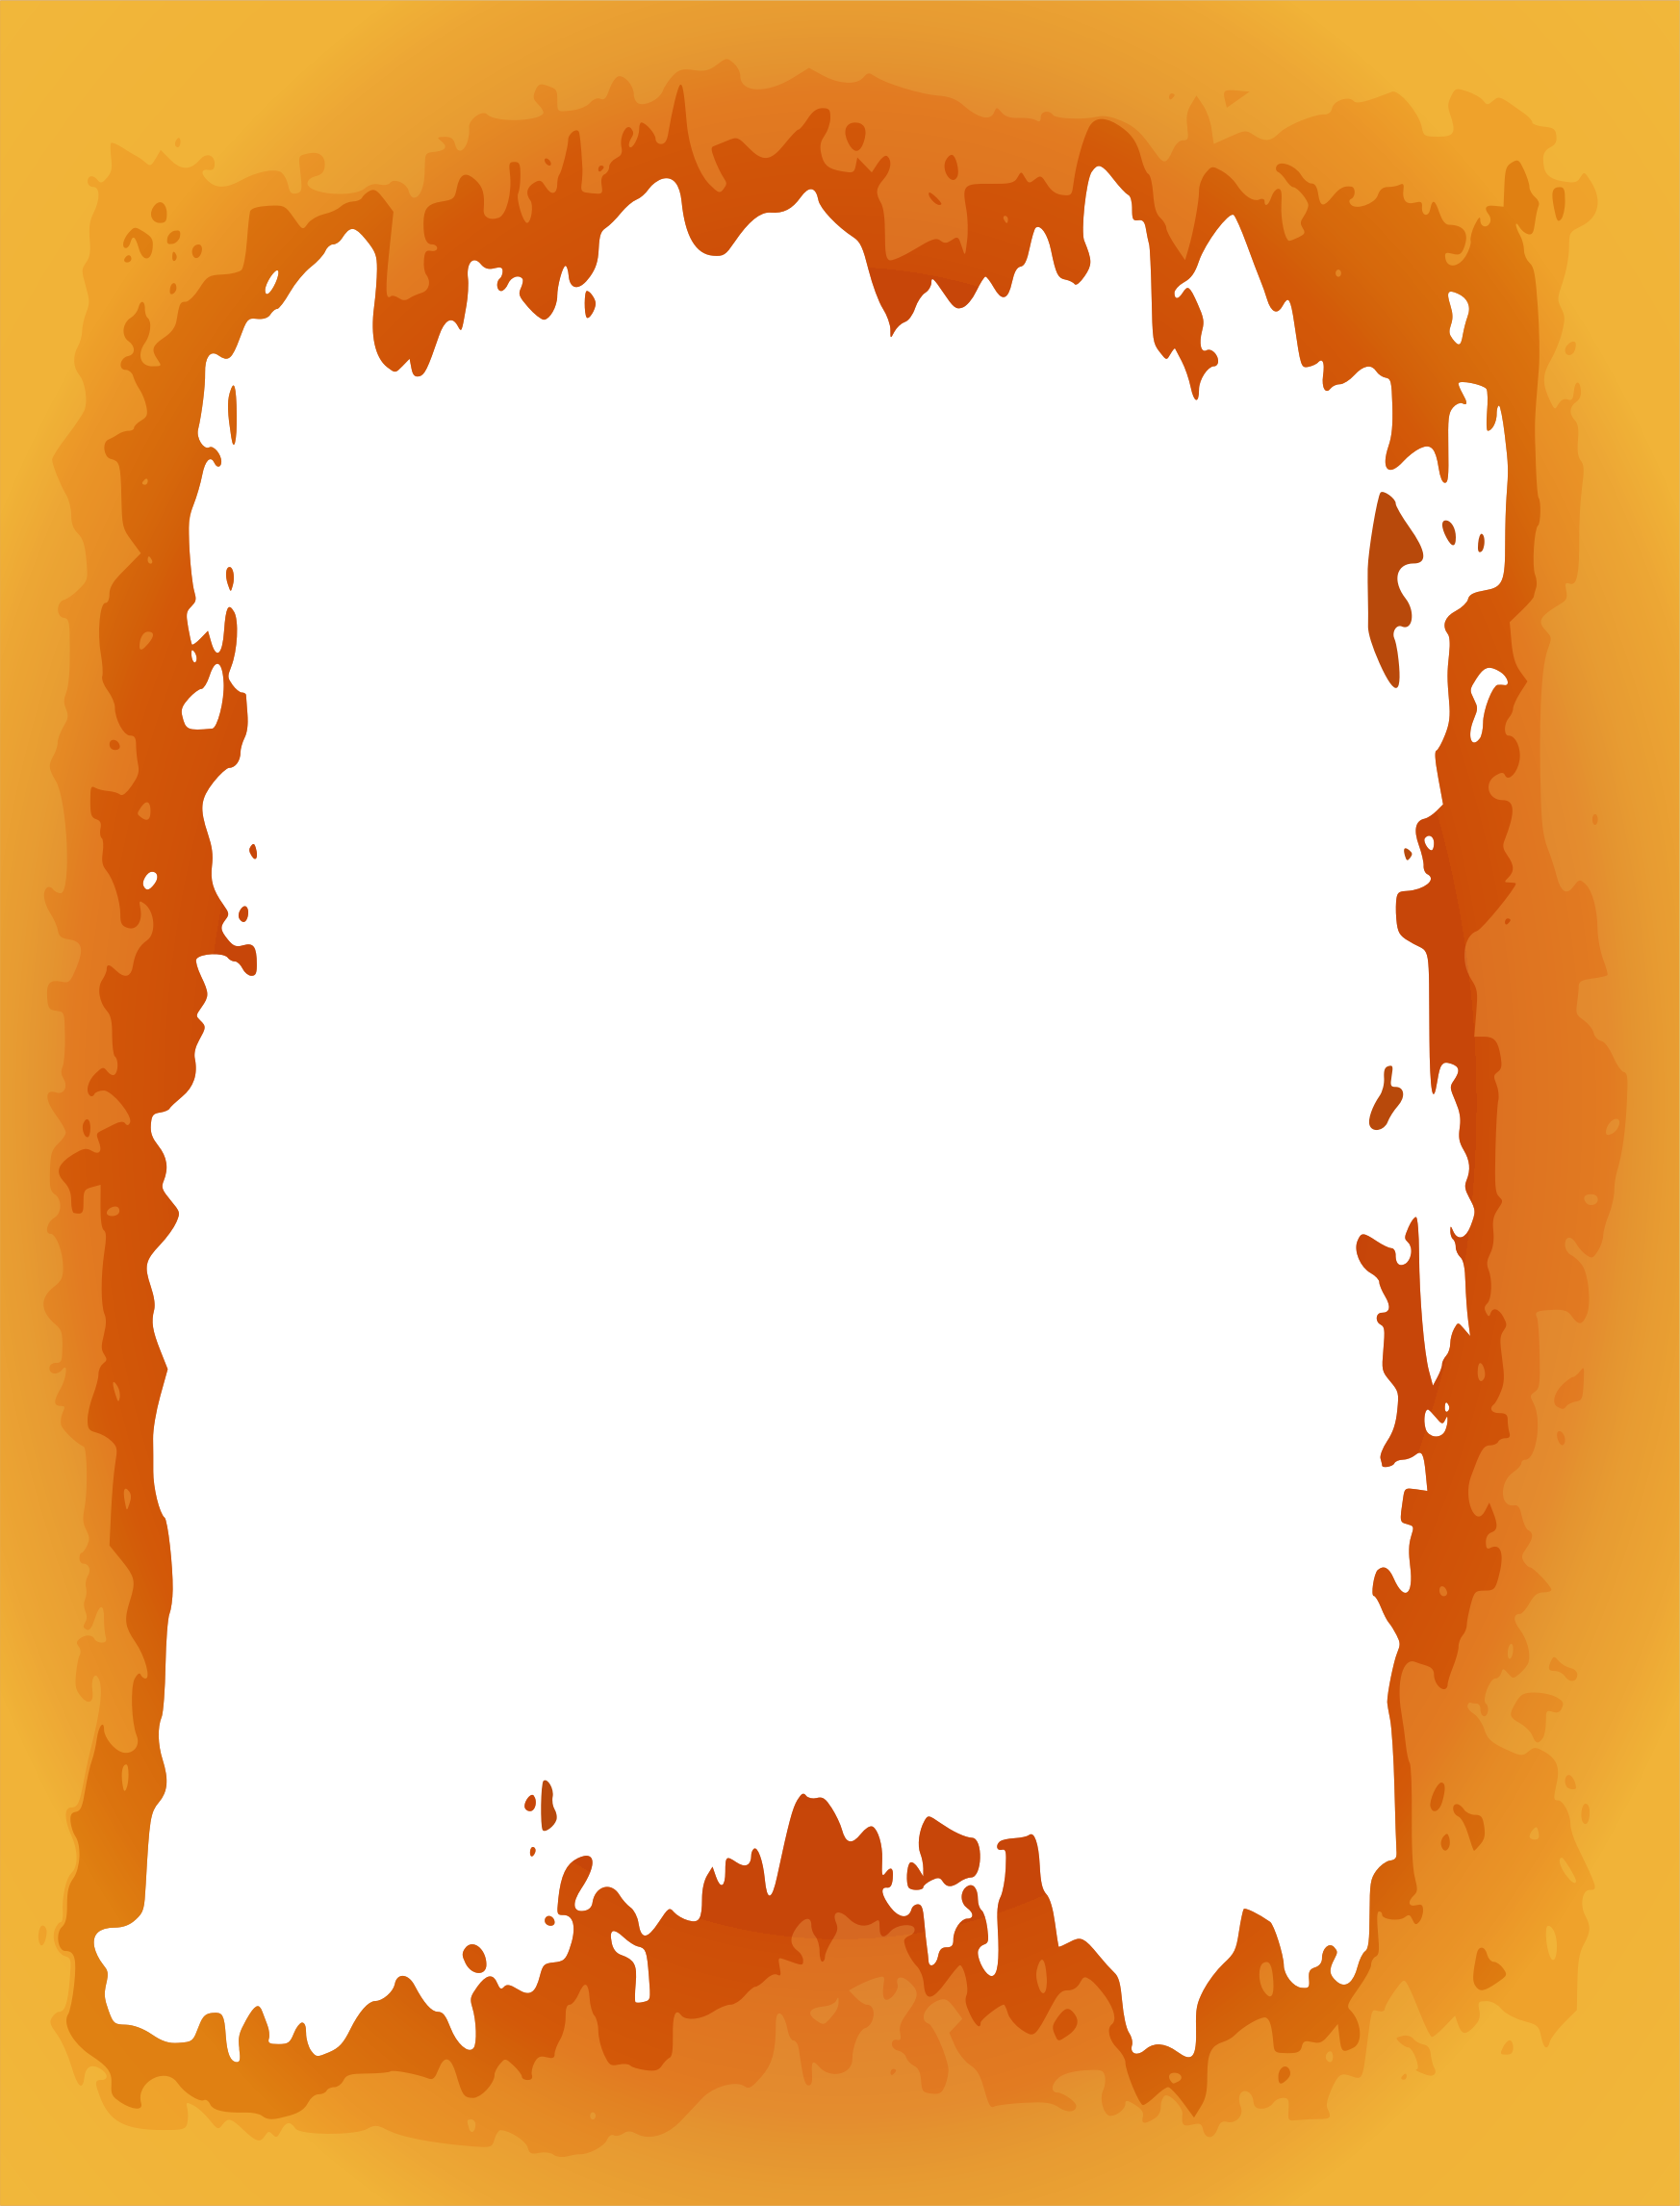 Fireplace clipart background. Fire border big image